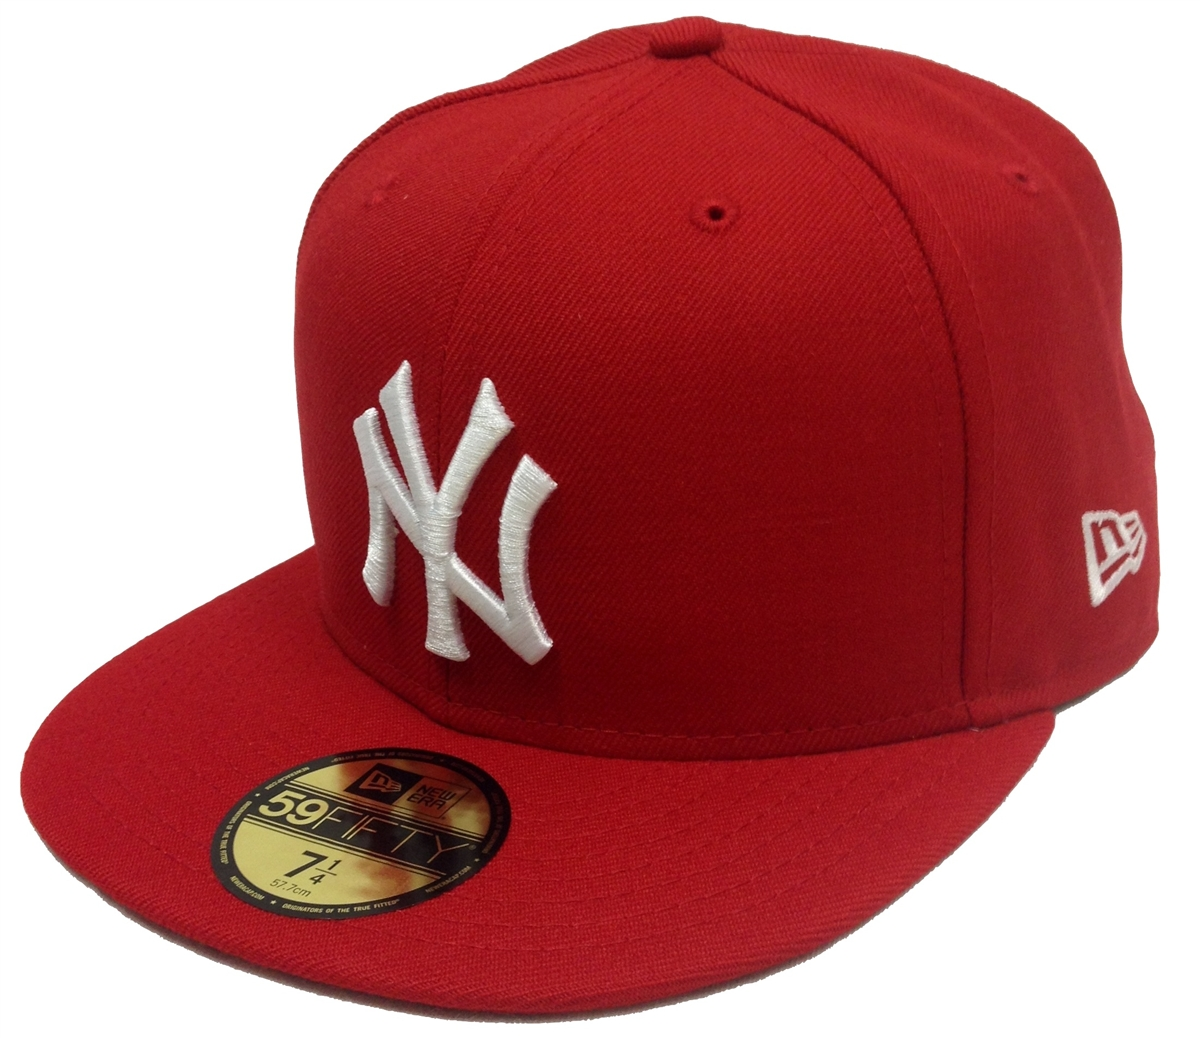 8d7e8a5d6ba New Era 59Fifty MLB Basic New York Yankees Red Fitted Cap